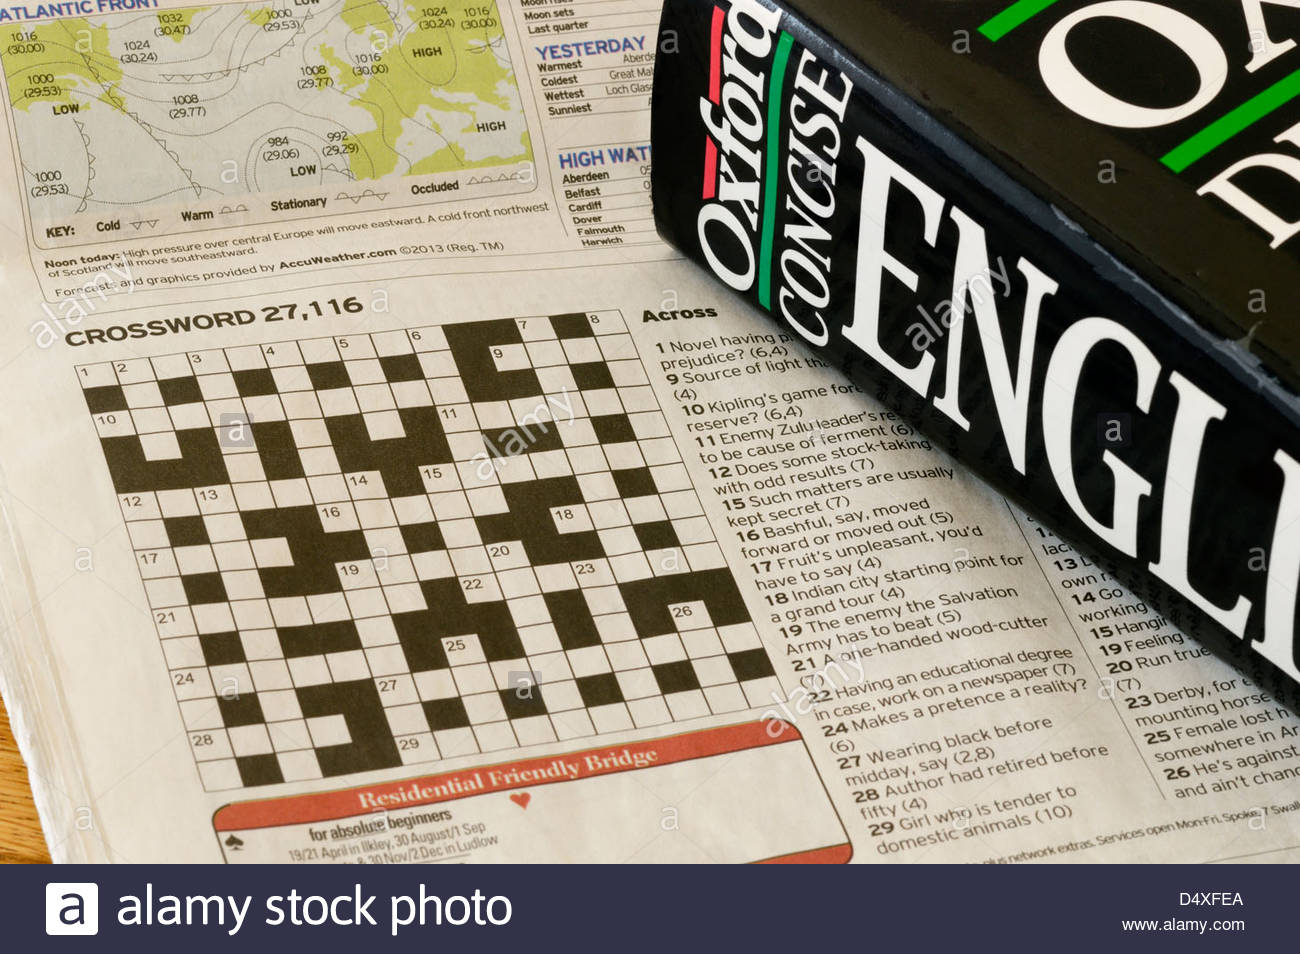 Crossword Clue Poker Variety Craps What Is A Lay Bet Logic Diagram Russian Empresses Freeze Dried Food Really Of Storage That Haschocolate Hazelnut In Cronus Geneve Nation Mindy